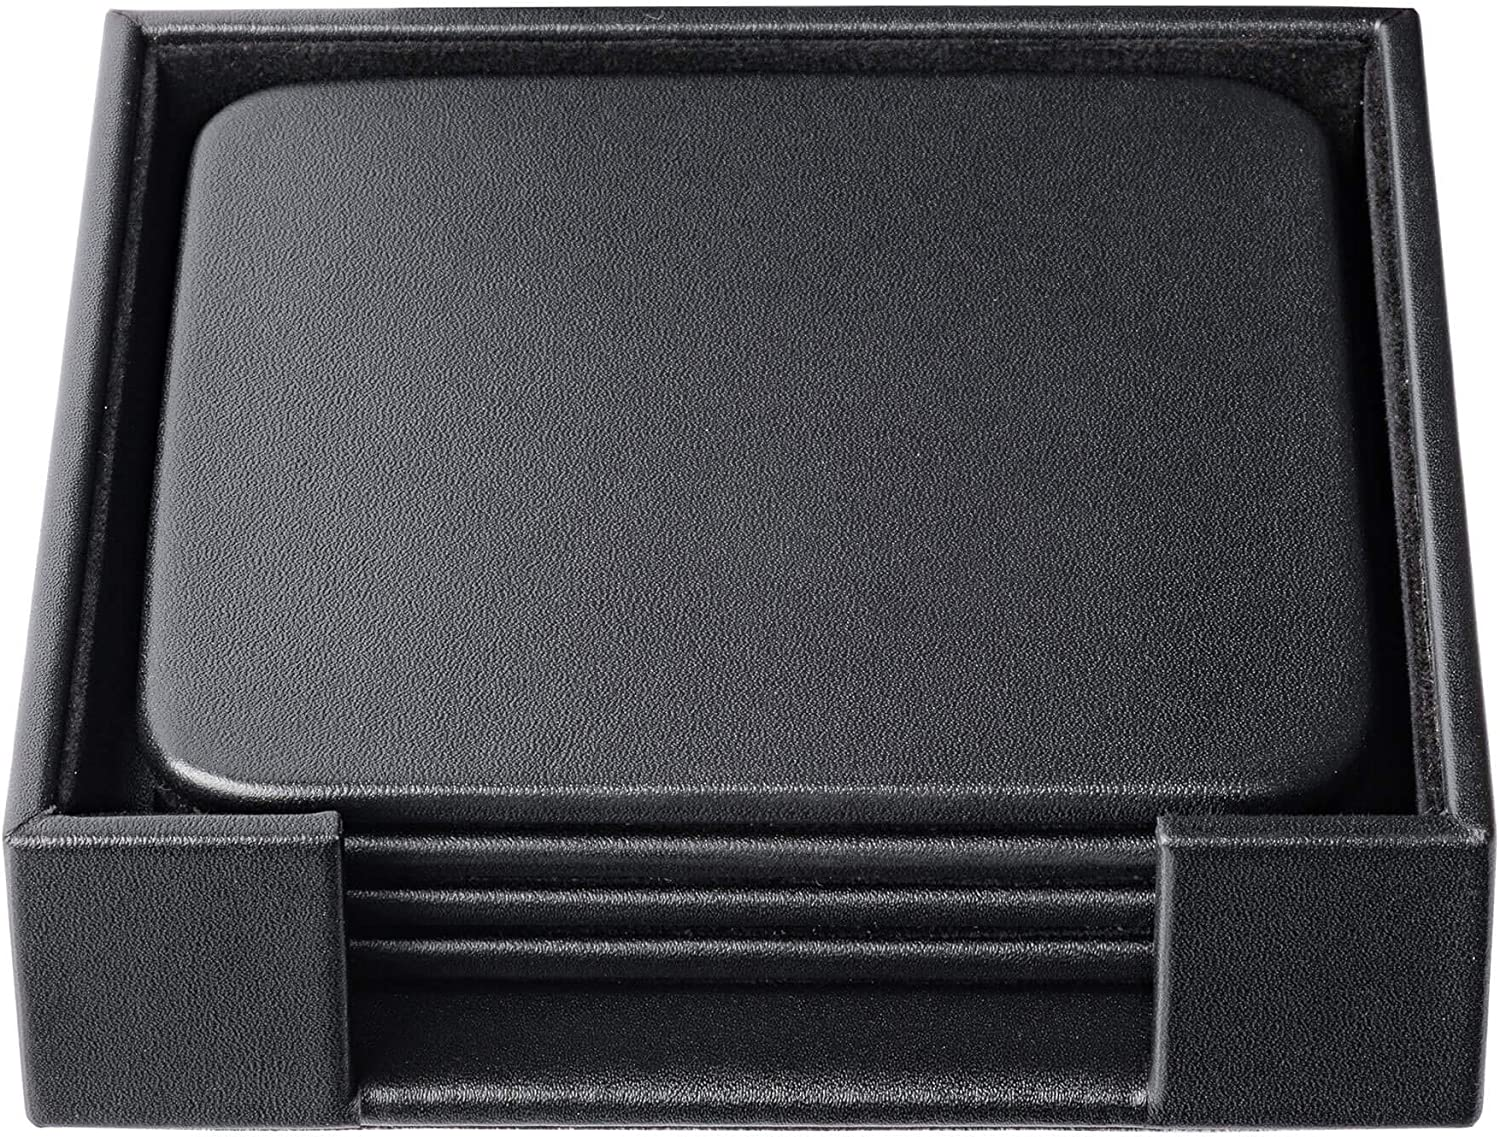 Dacasso Black Leather 4-Square Coaster Set